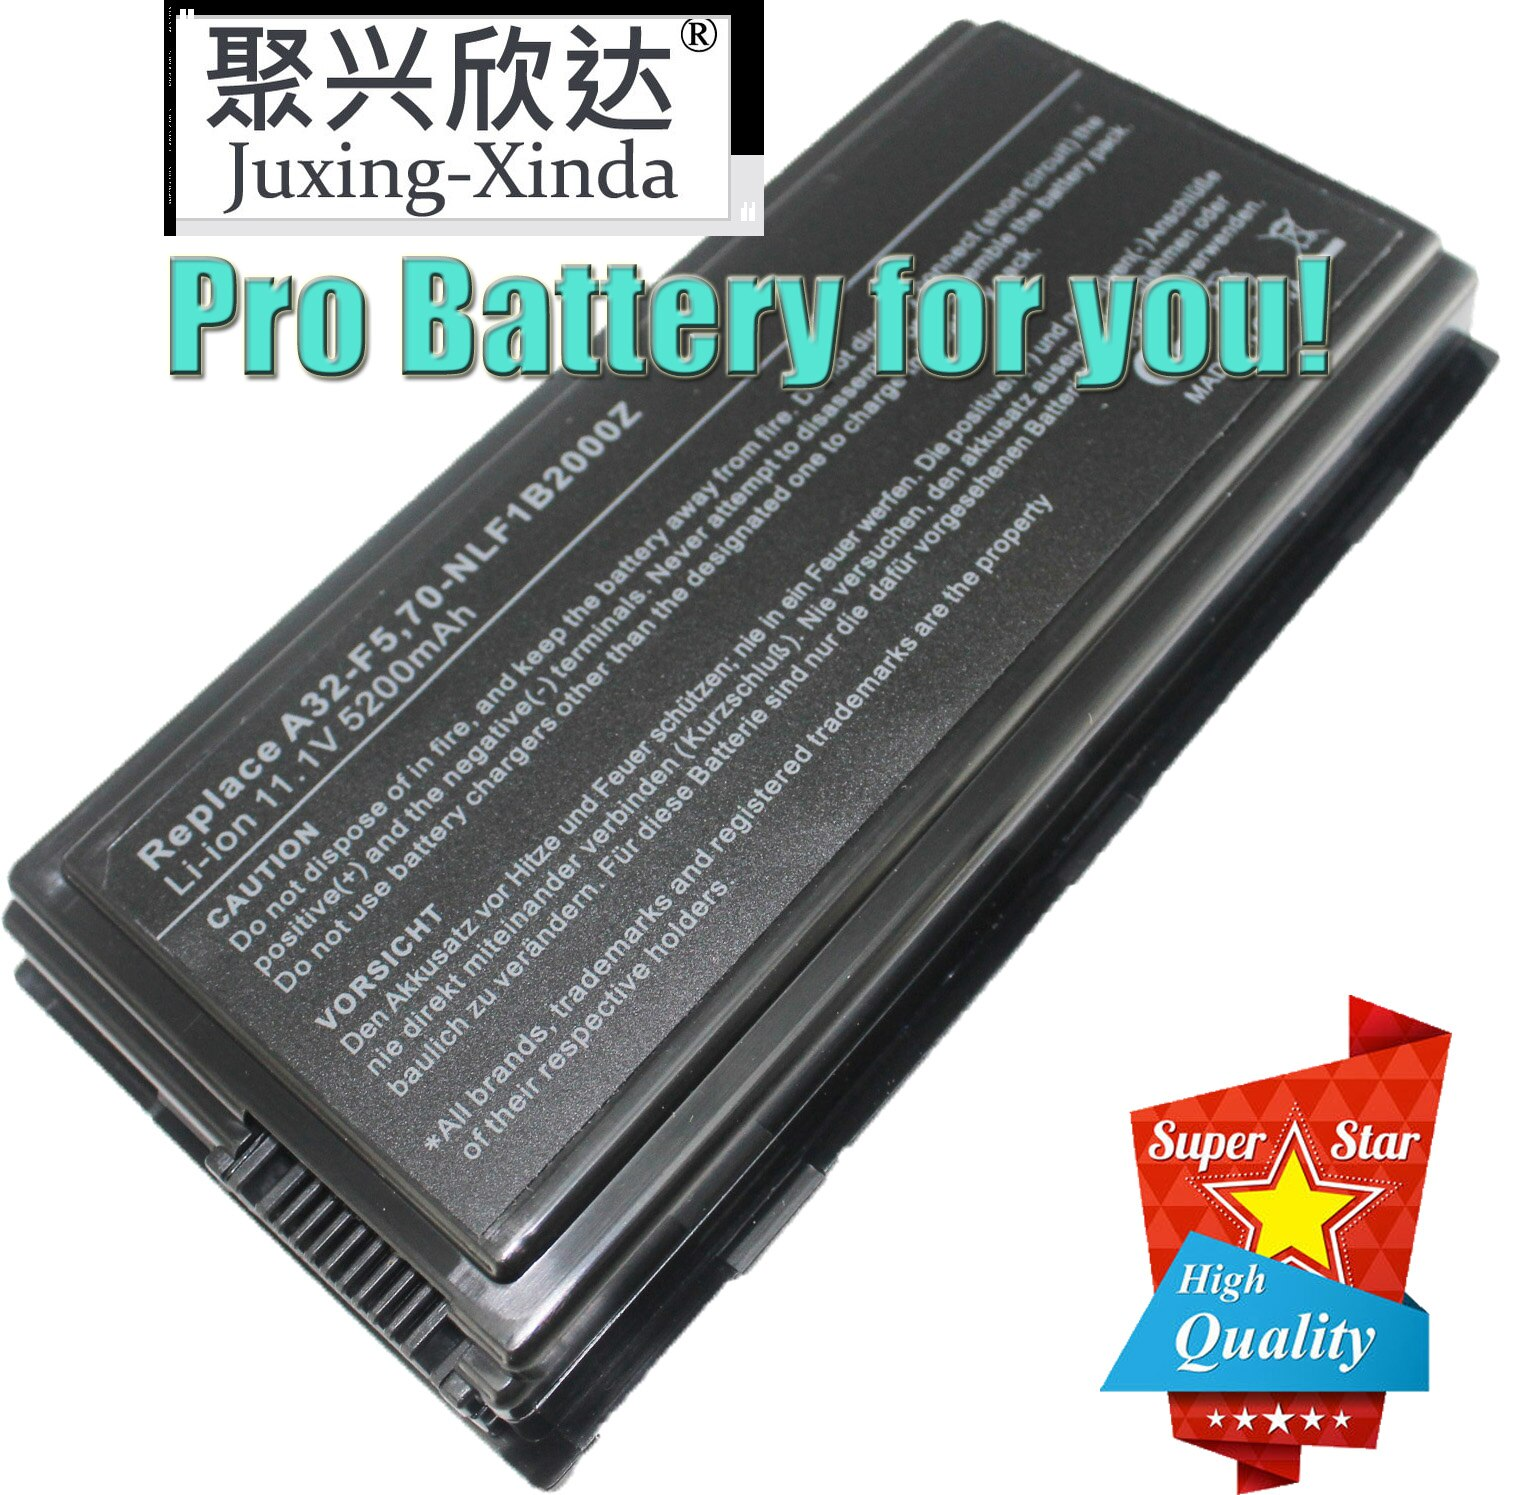 Laptop battery for ASUS F5N F5R F5RL F5S F5SL Notebook PC A32-F5 For Asus X50 X50C X50GL X50M X50N X50R X50RL X50SL X5 apexway 4400mah 11 1v 6cell laptop battery for asus a32 f5 x50v x50vl x59 x59sr f5 f5v f5 f5ri f5sl f5sr x50r x50rl x50sl x50sr